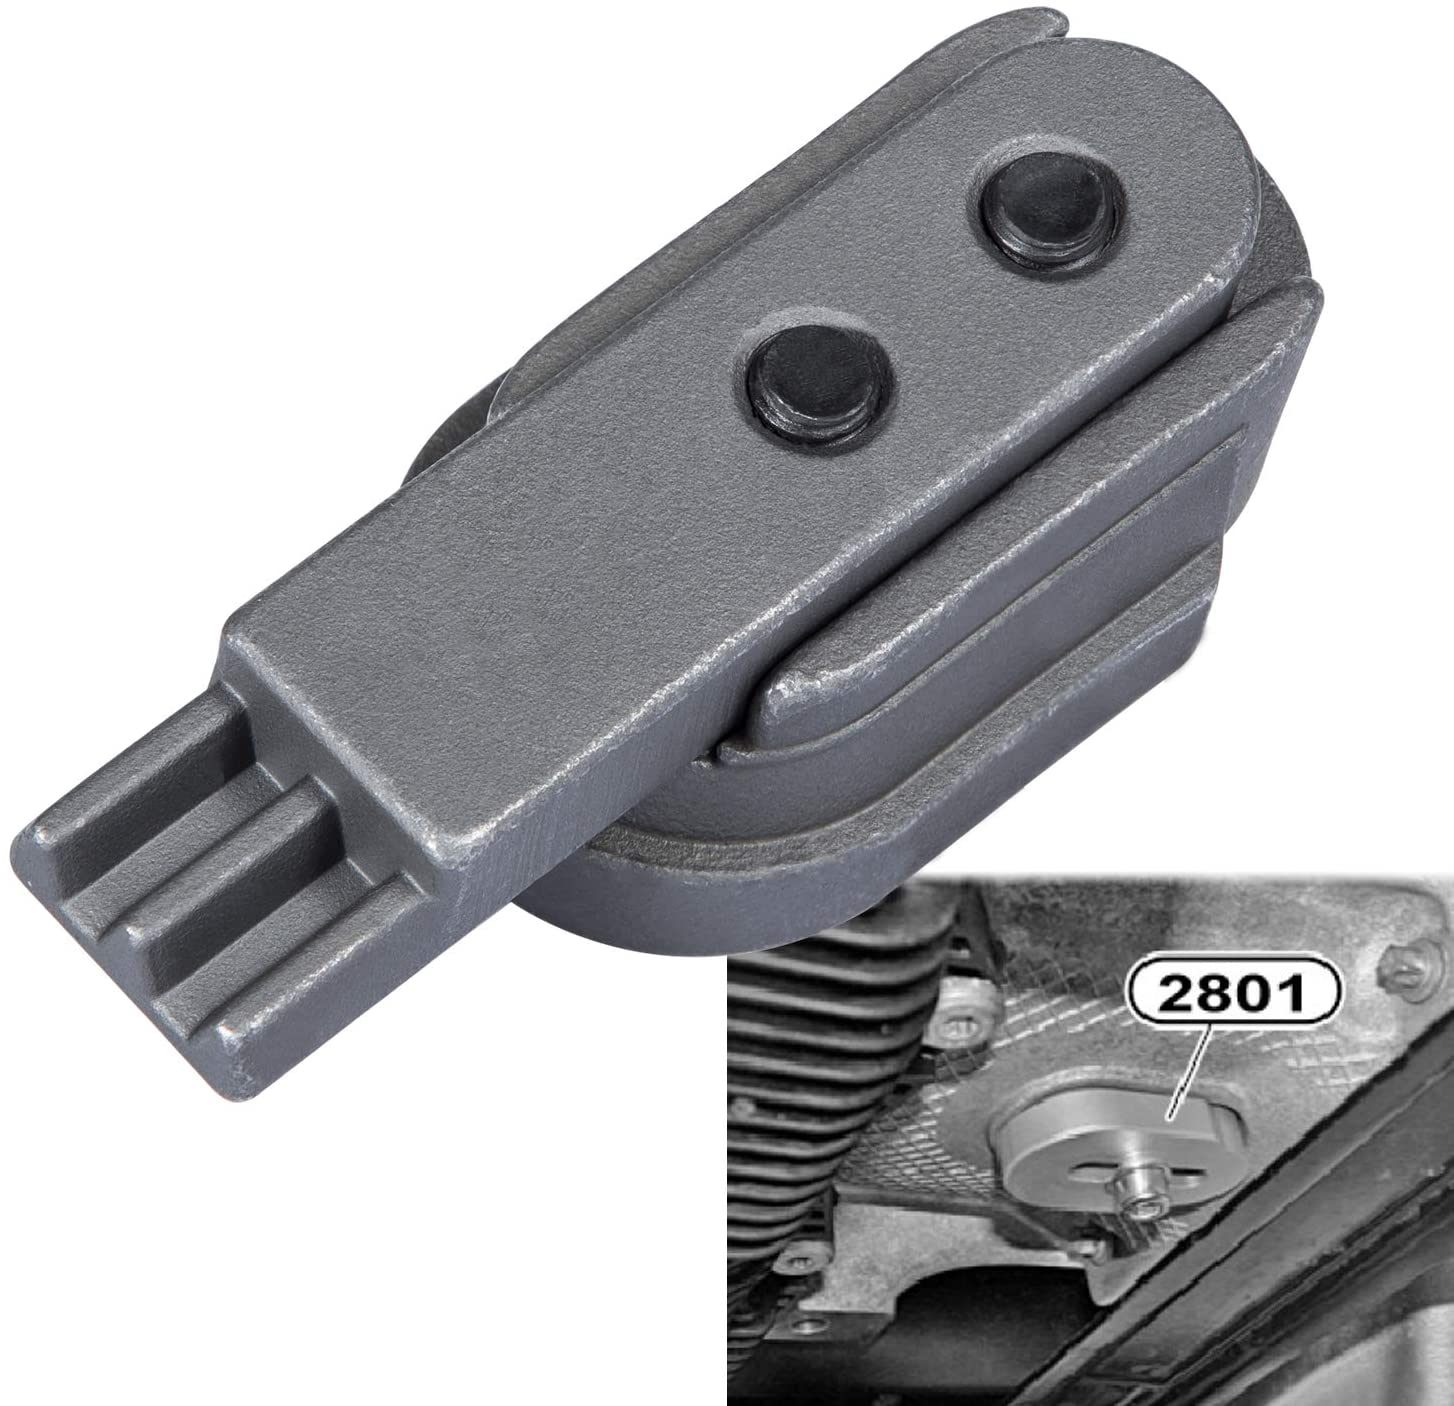 Chuang Qian 2801 Flywheel Holder for BMW N20 N26 Engines Flex Plate Lock Tool 83302222742 Great for Replacing The Timing Chain